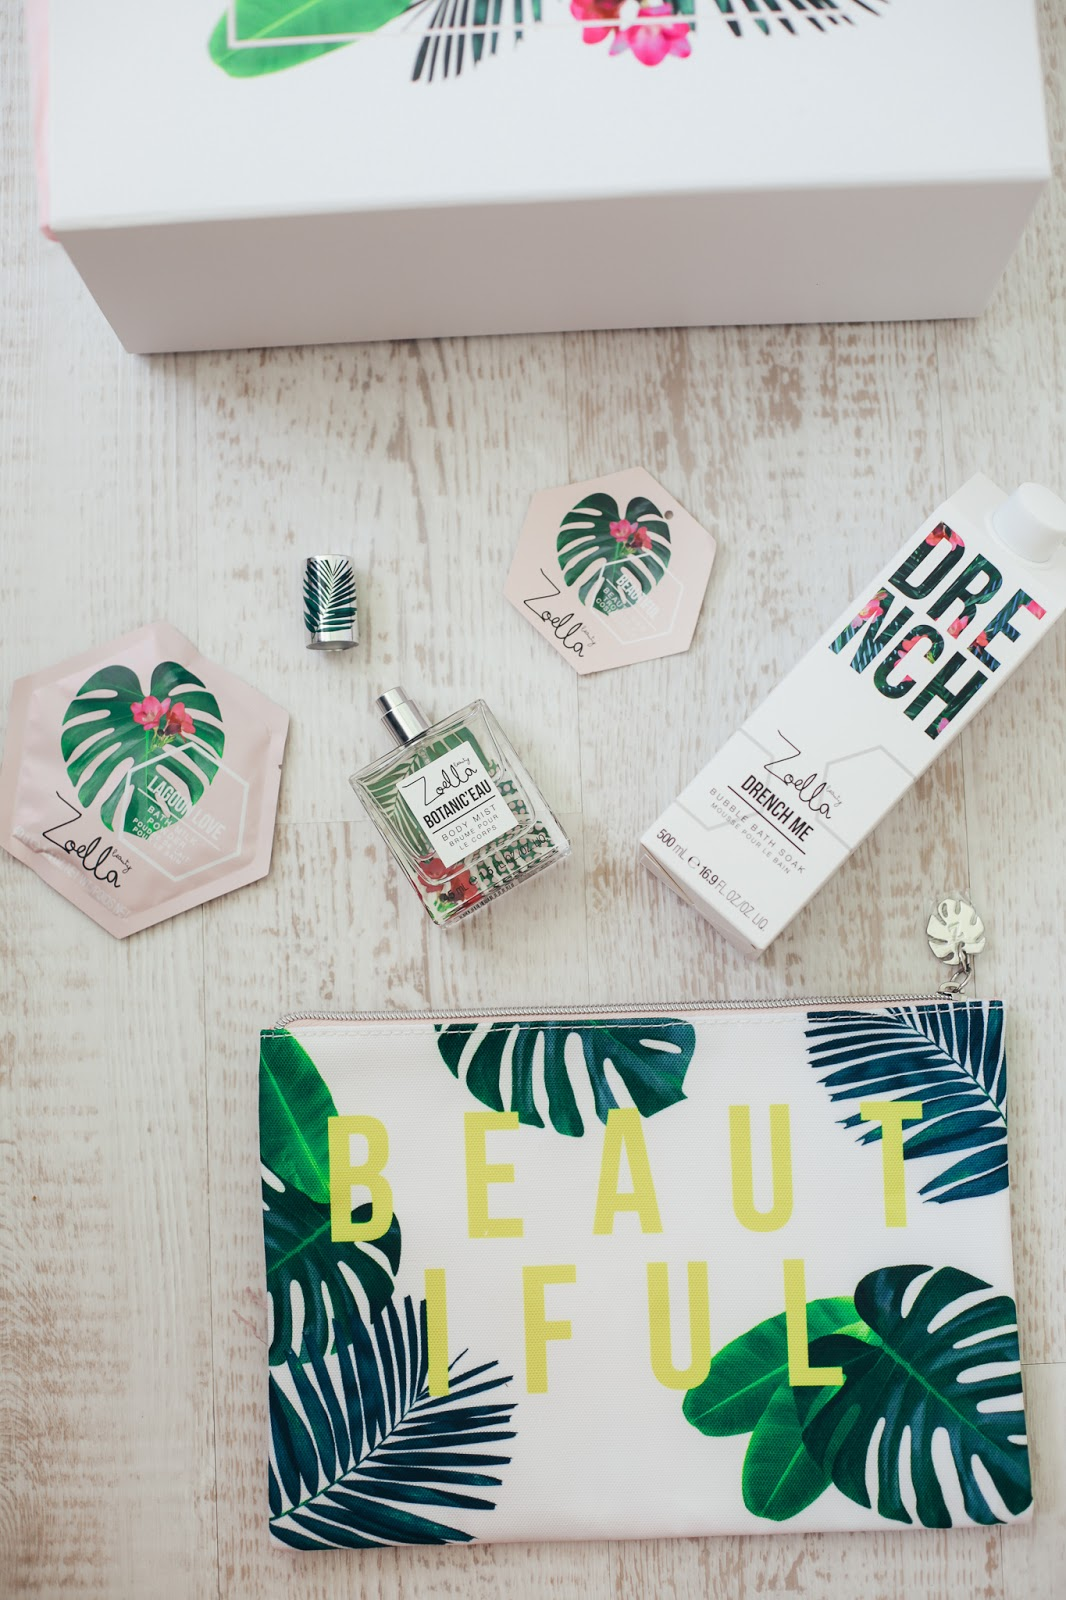 Zoella beauty splash botanics